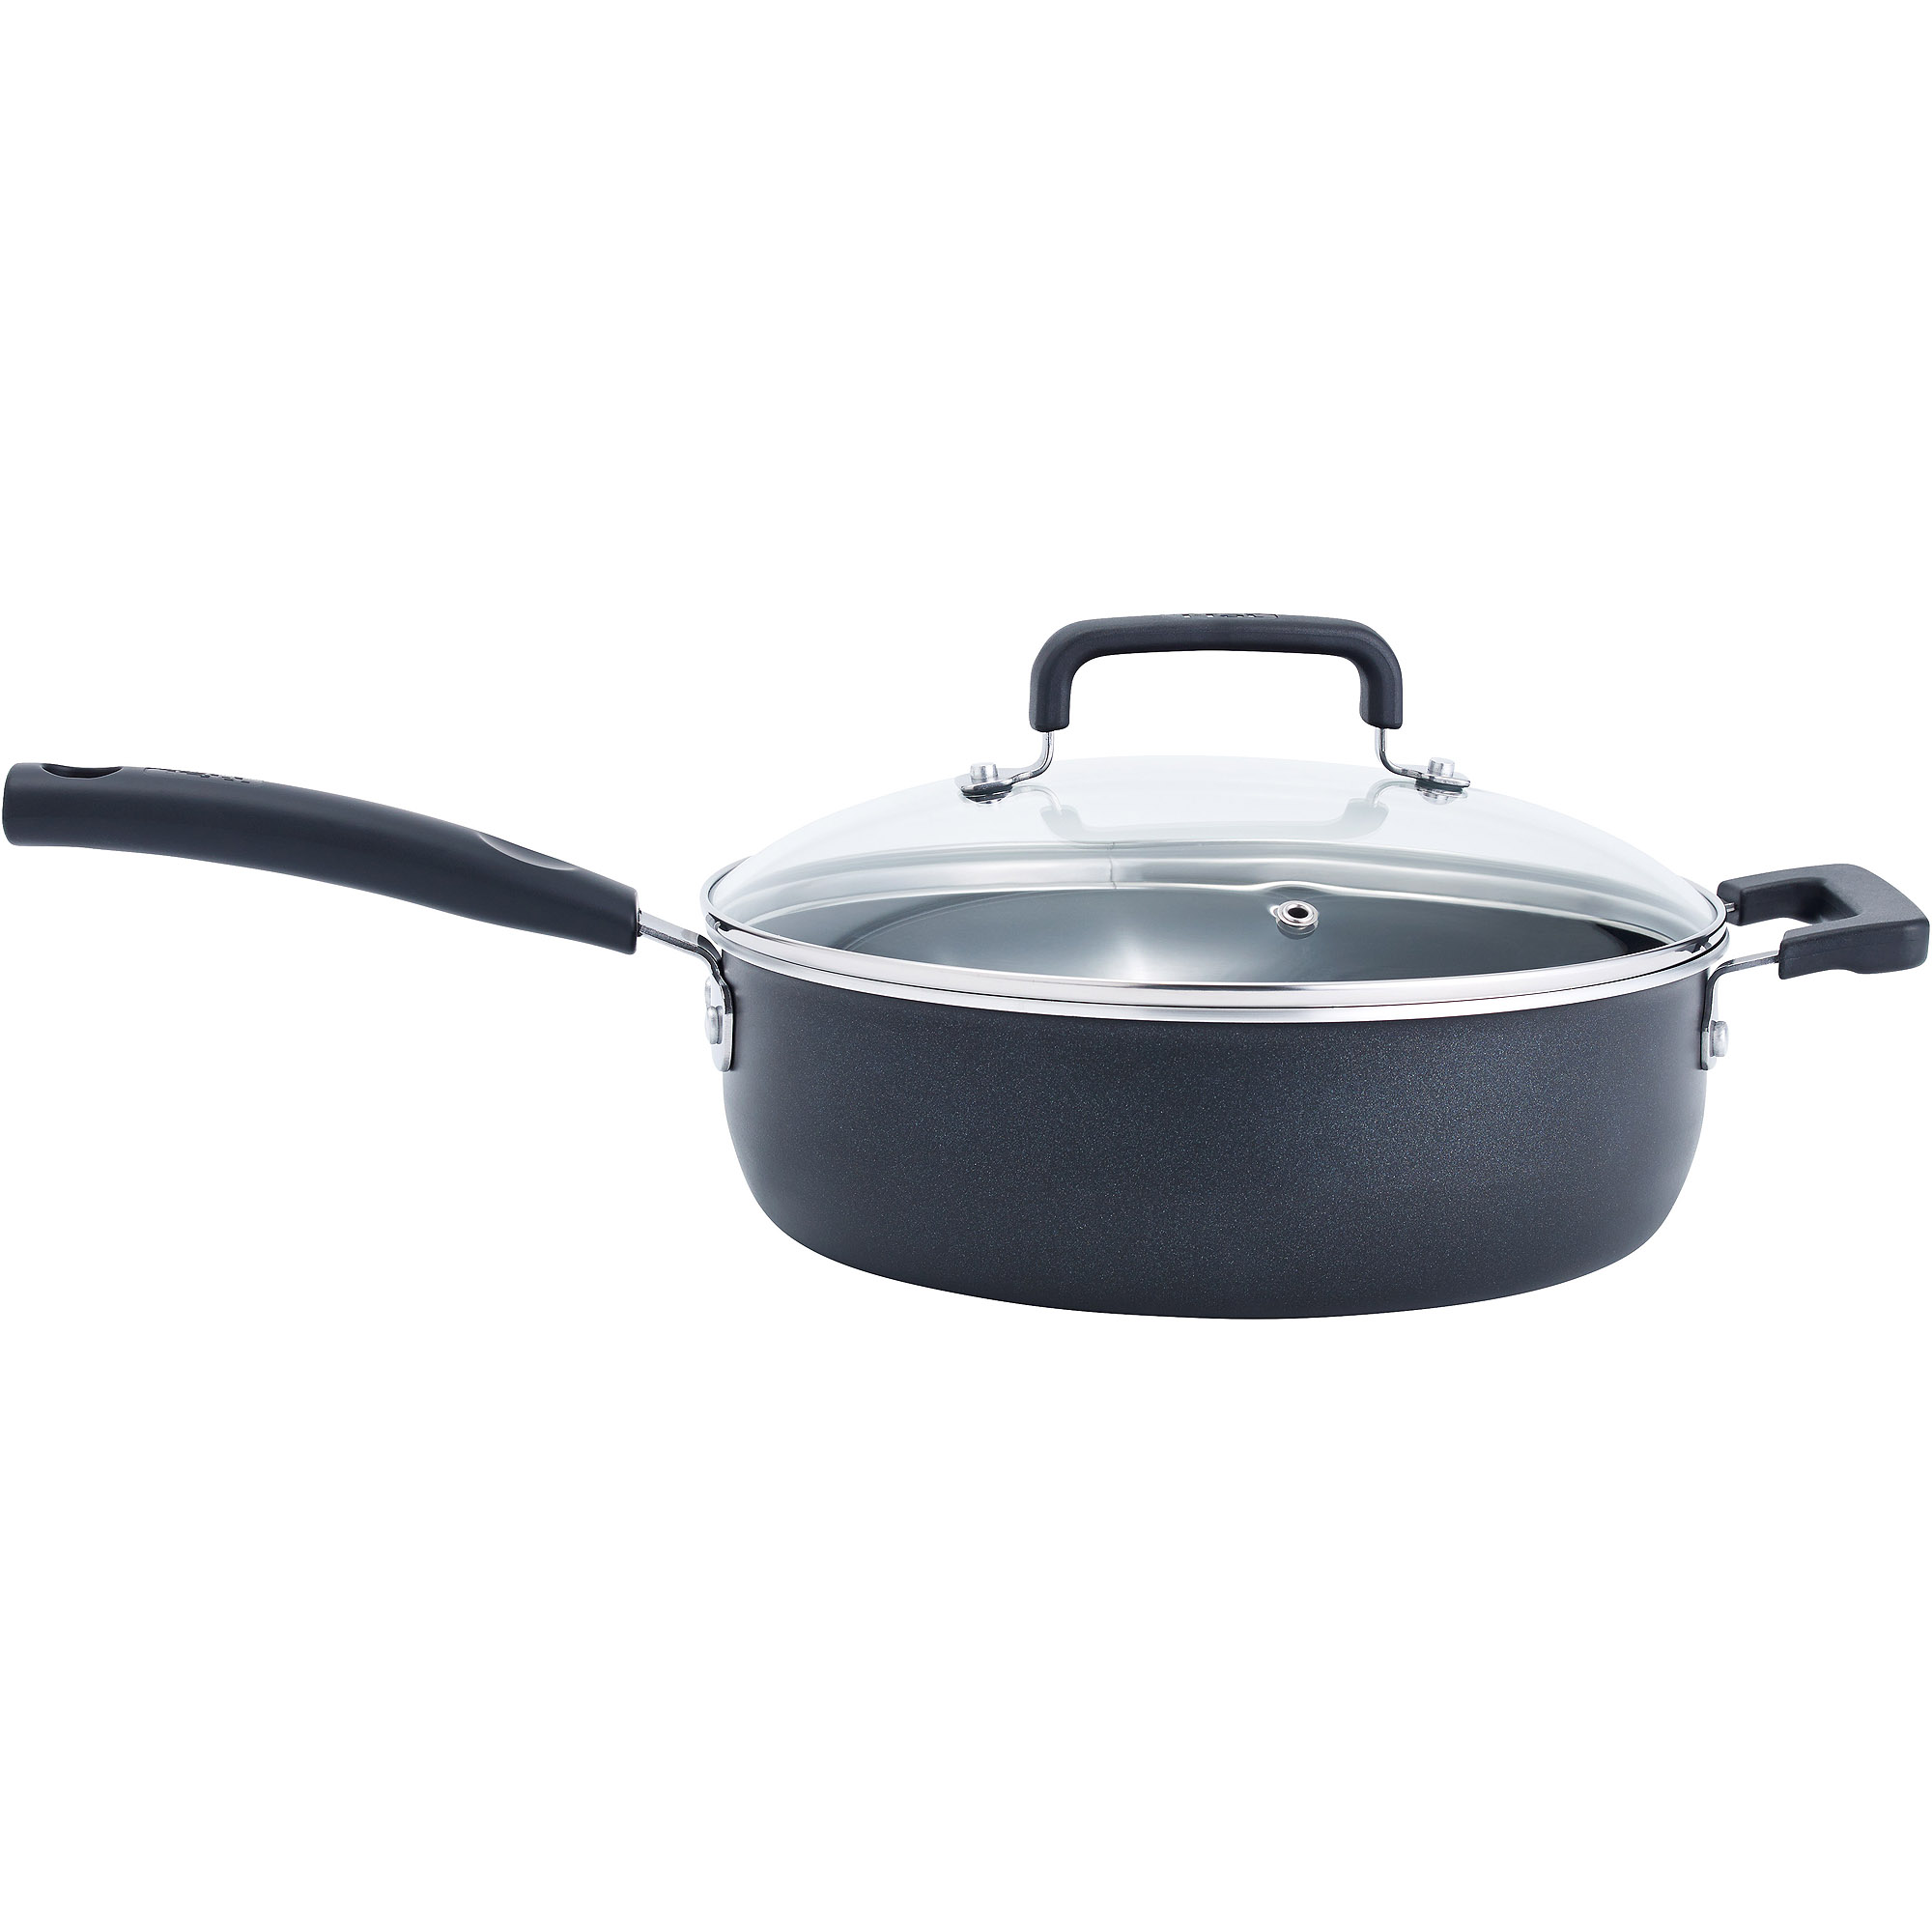 T-fal Signature Non-Stick 4.2-Quart Covered Jumbo Cooker, Black